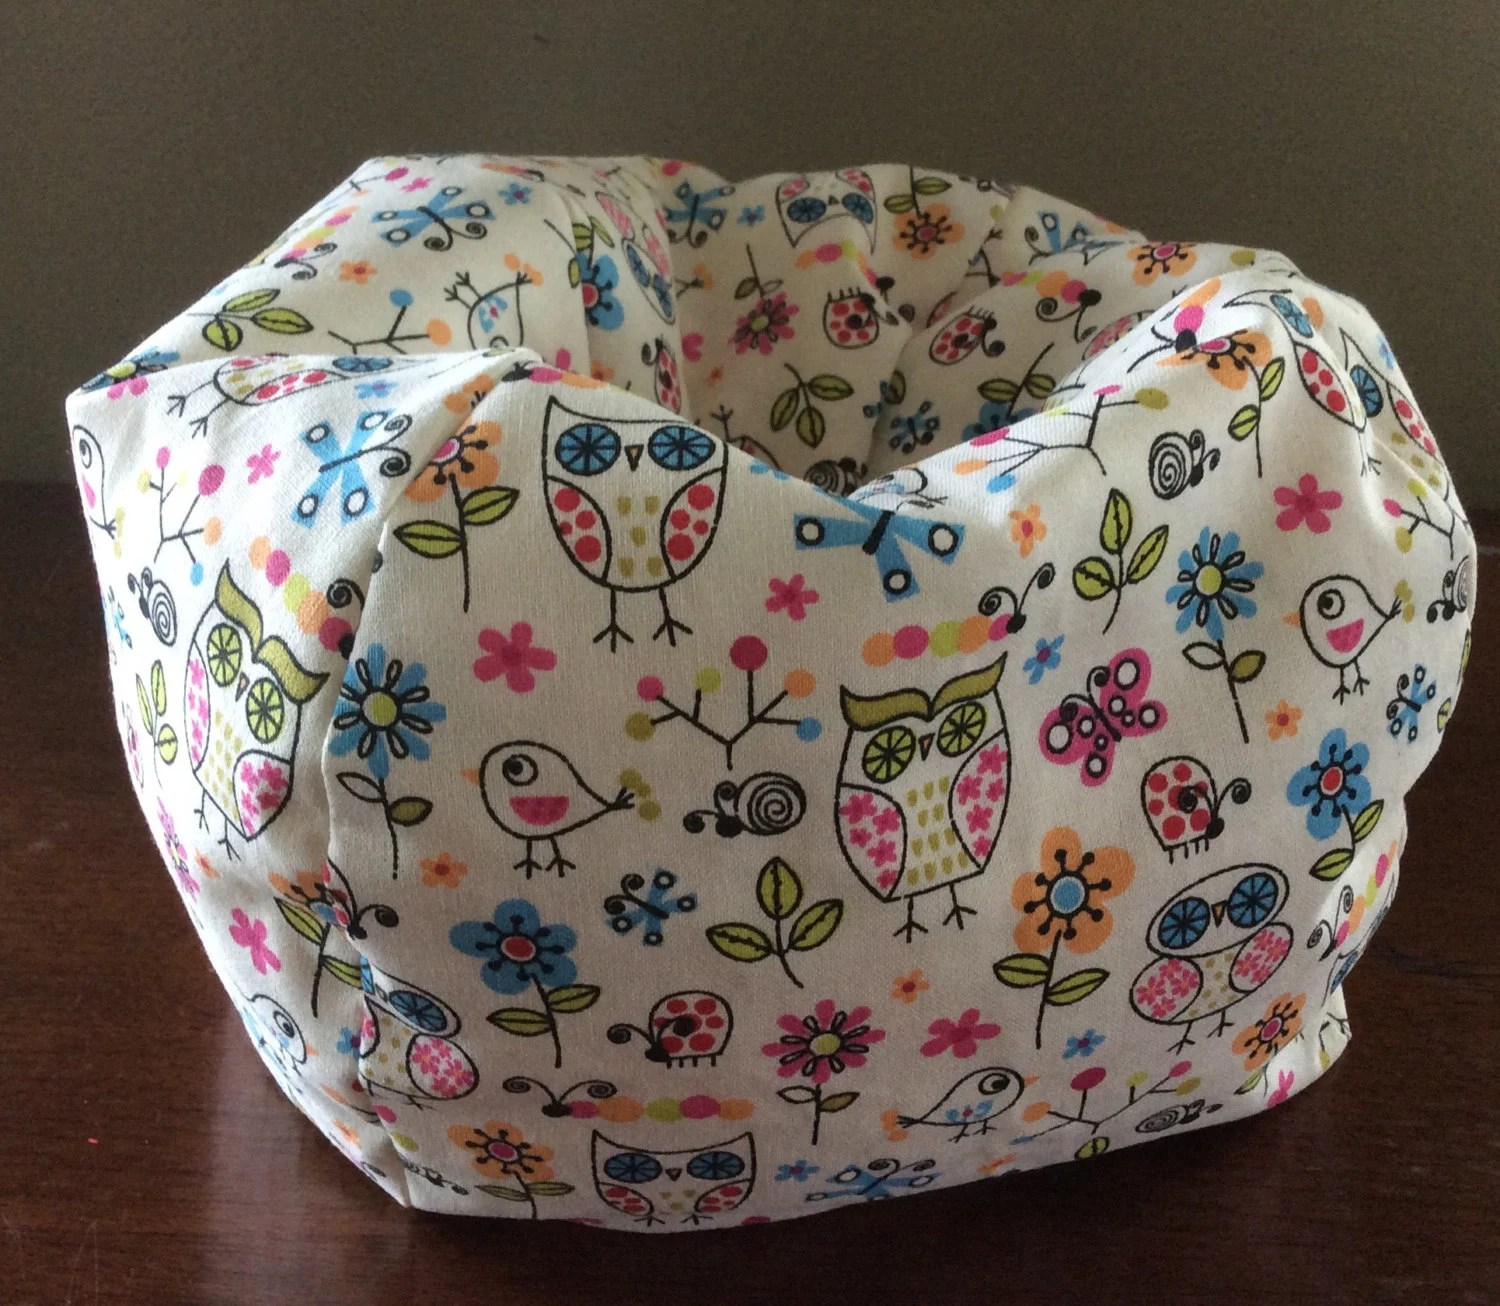 barbie bean bag chair portable folding chairs american girl doll or 18 owls